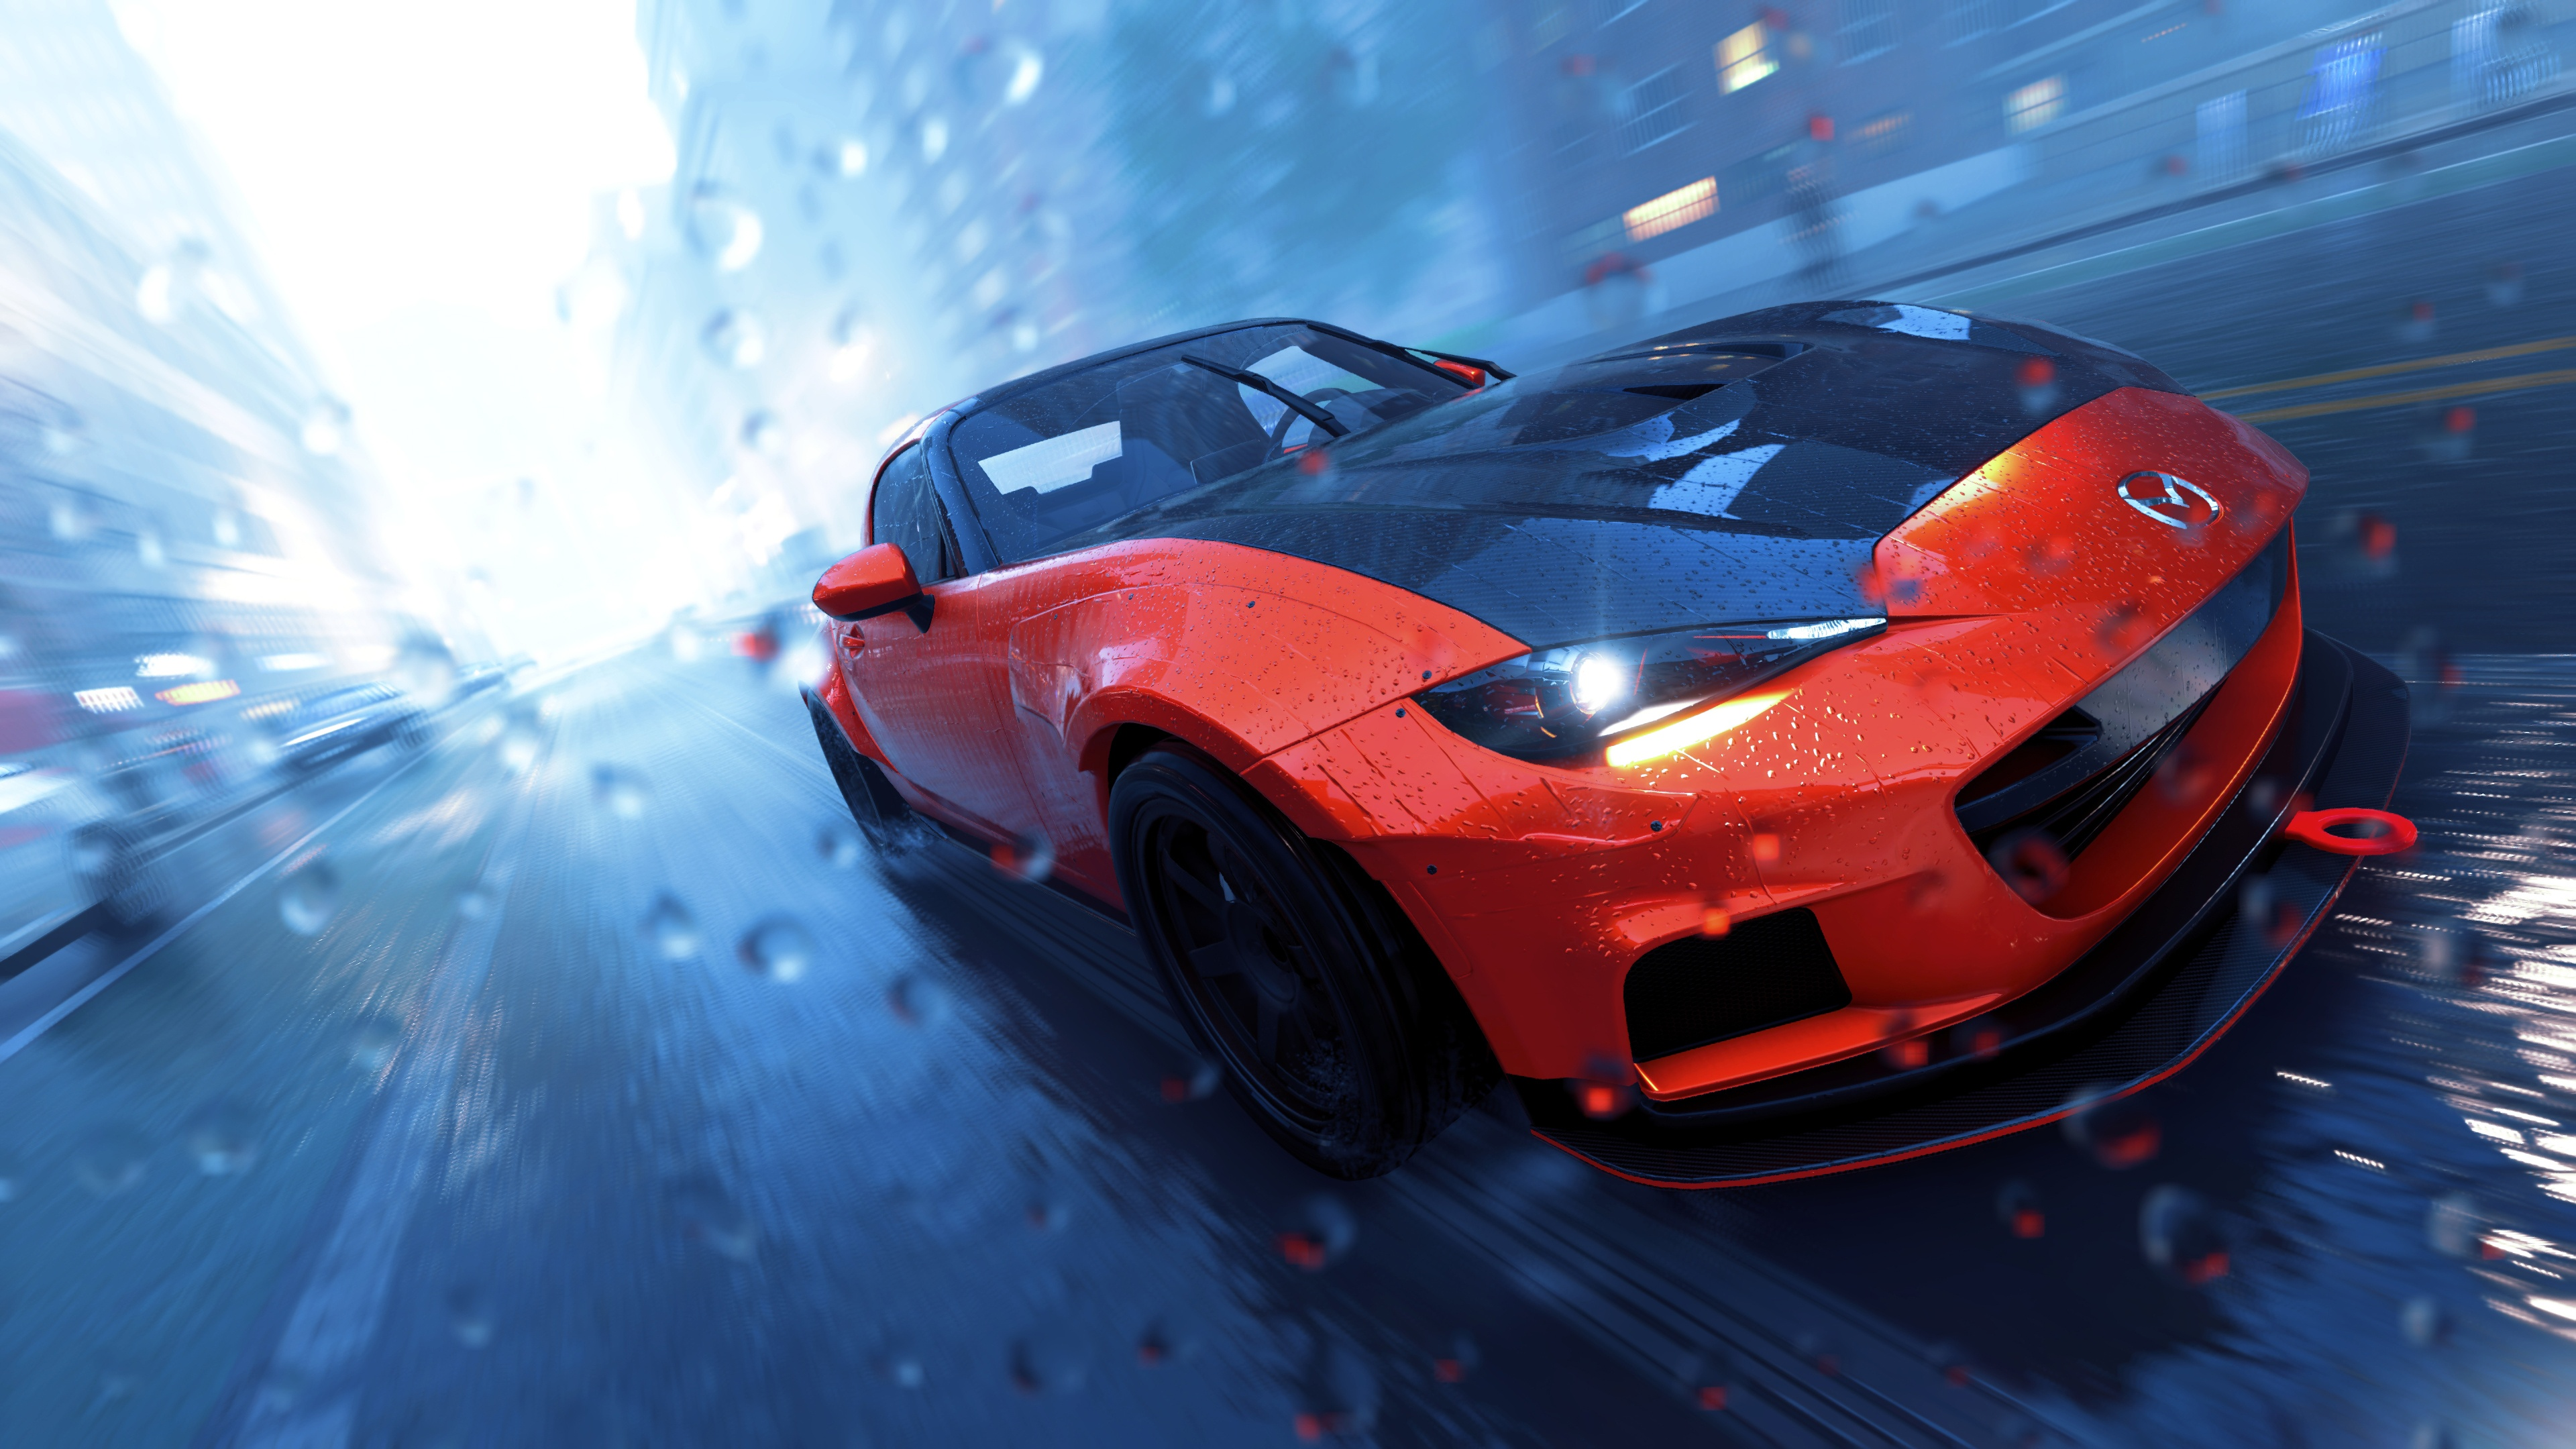 4k the crew 2 video game 1537690555 - 4k The Crew 2 Video Game - xbox games wallpapers, the crew wallpapers, the crew 2 wallpapers, ps games wallpapers, pc games wallpapers, hd-wallpapers, games wallpapers, 4k-wallpapers